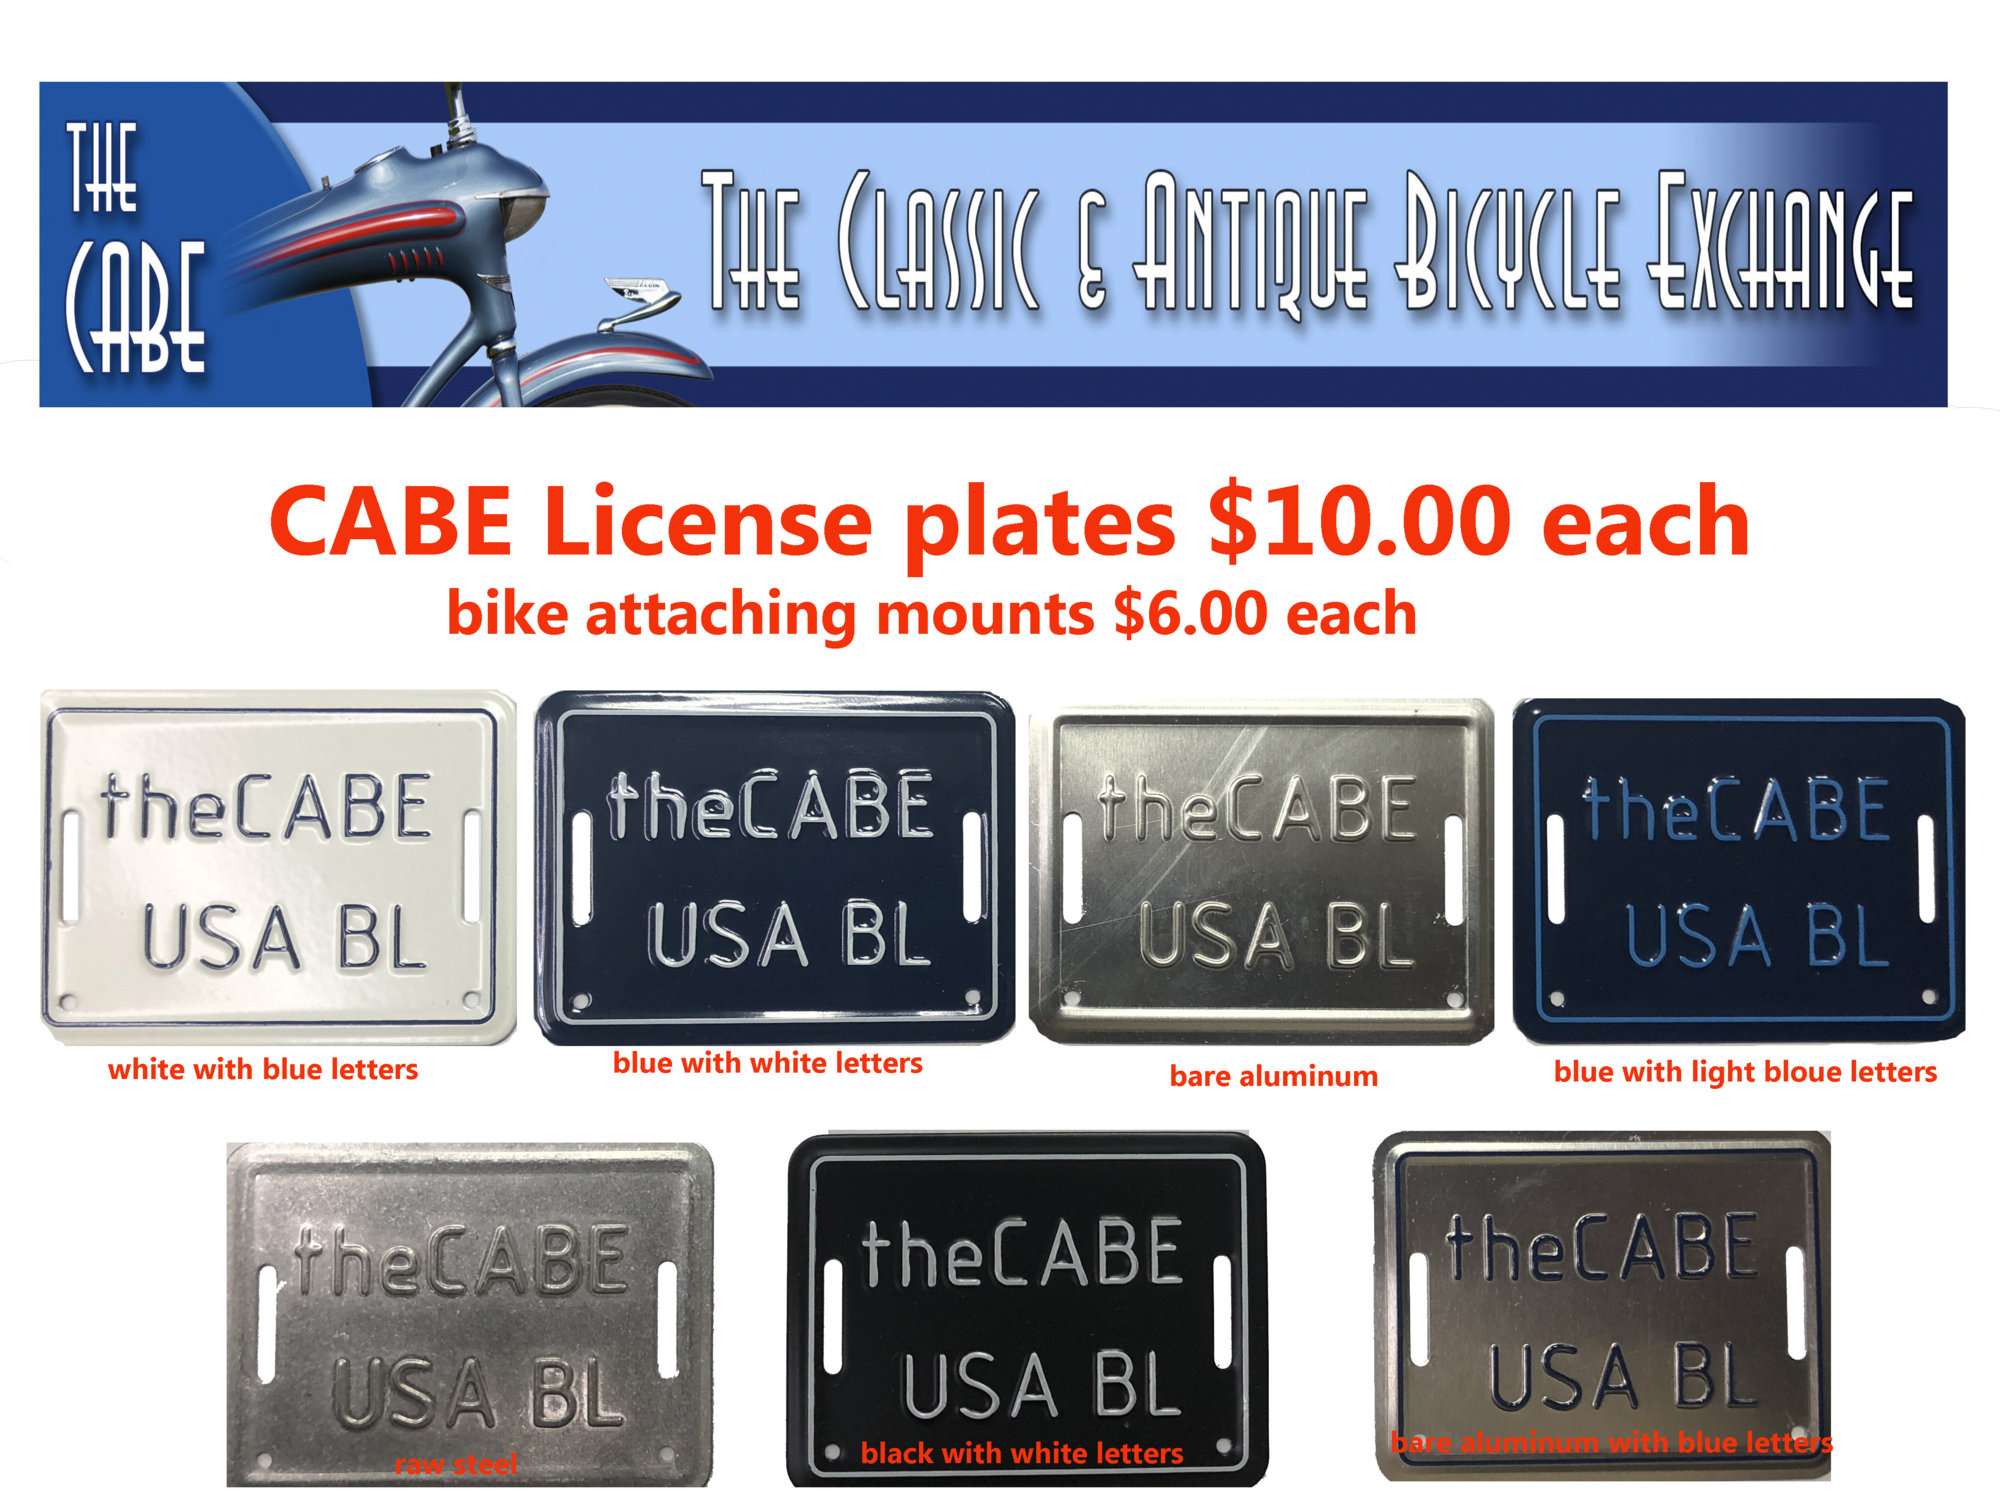 theCABE license plate sign.jpg